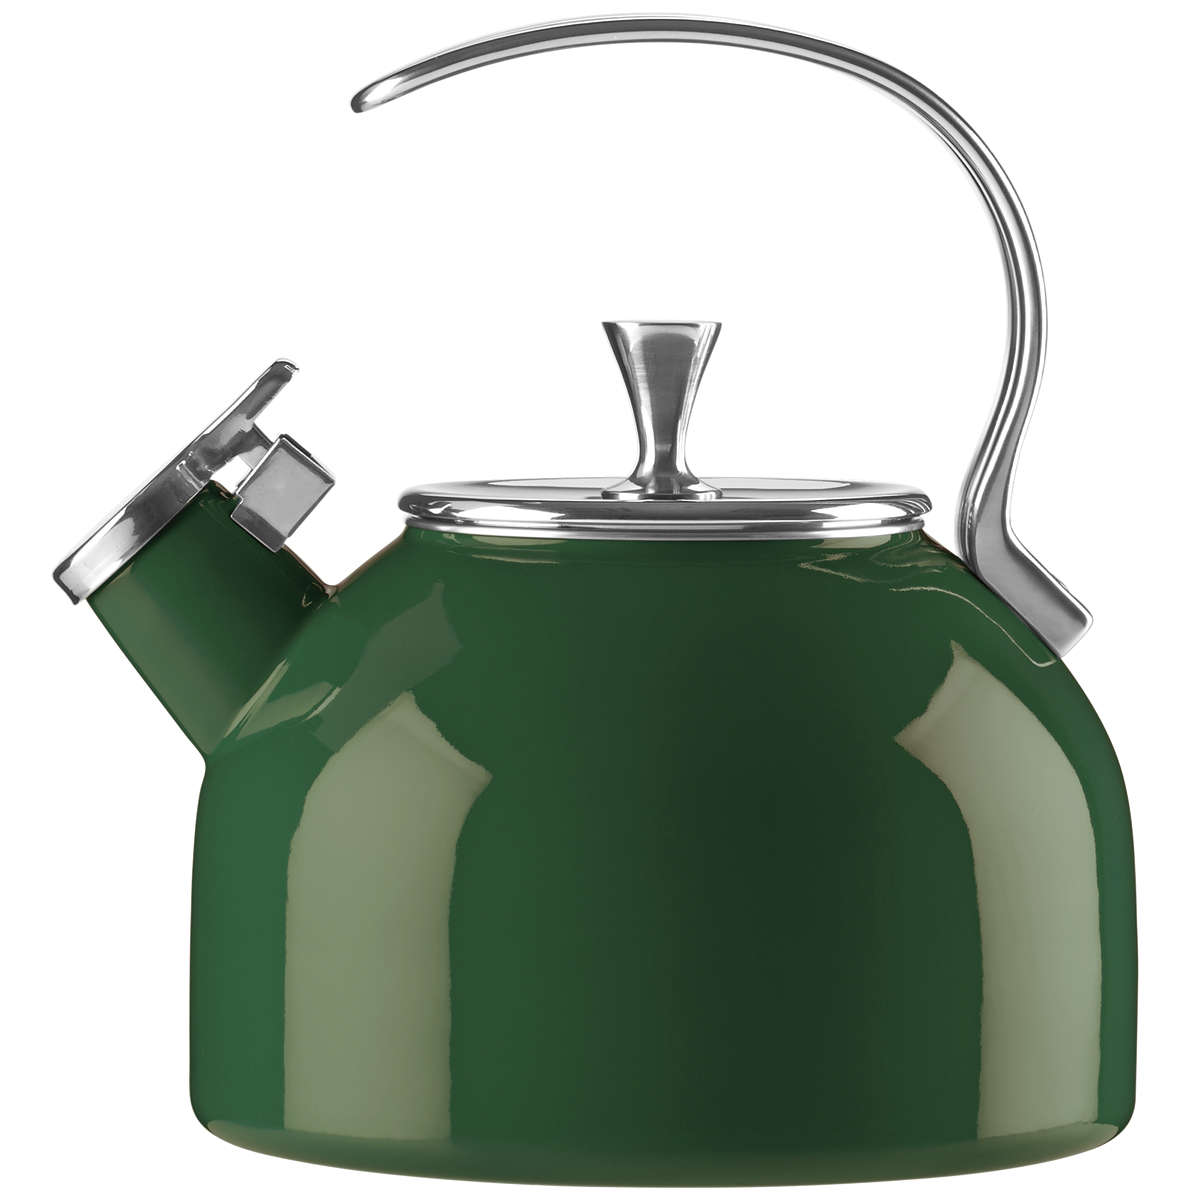 Kate Spade New York, Lenox Metal Clover Kettle